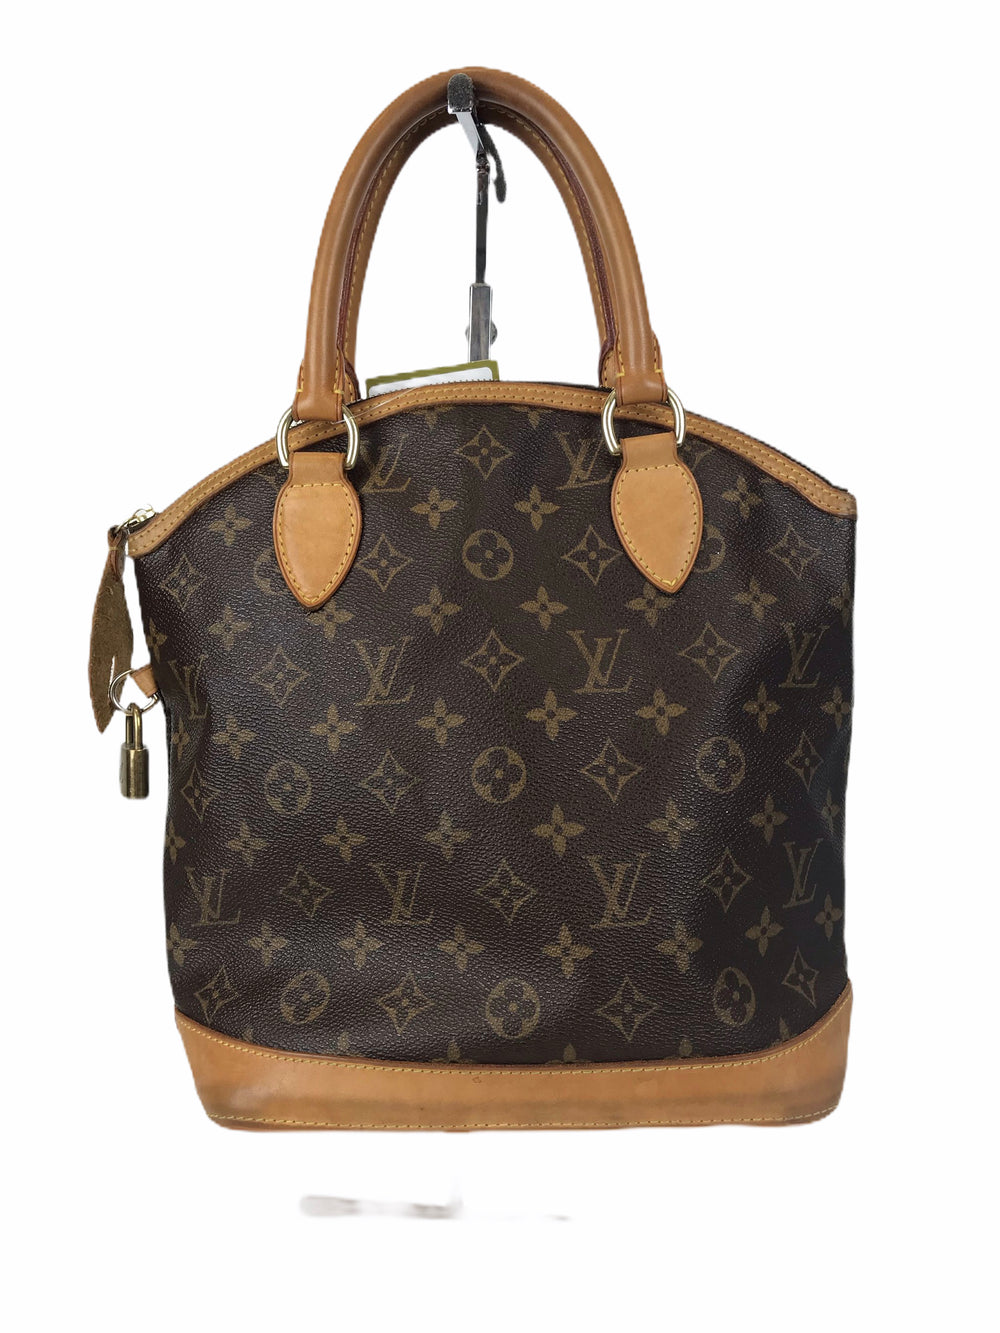 Louis Vuitton Monogram Canvas Tote - As Seen on Instagram 2/08/2020 - Siopaella Designer Exchange